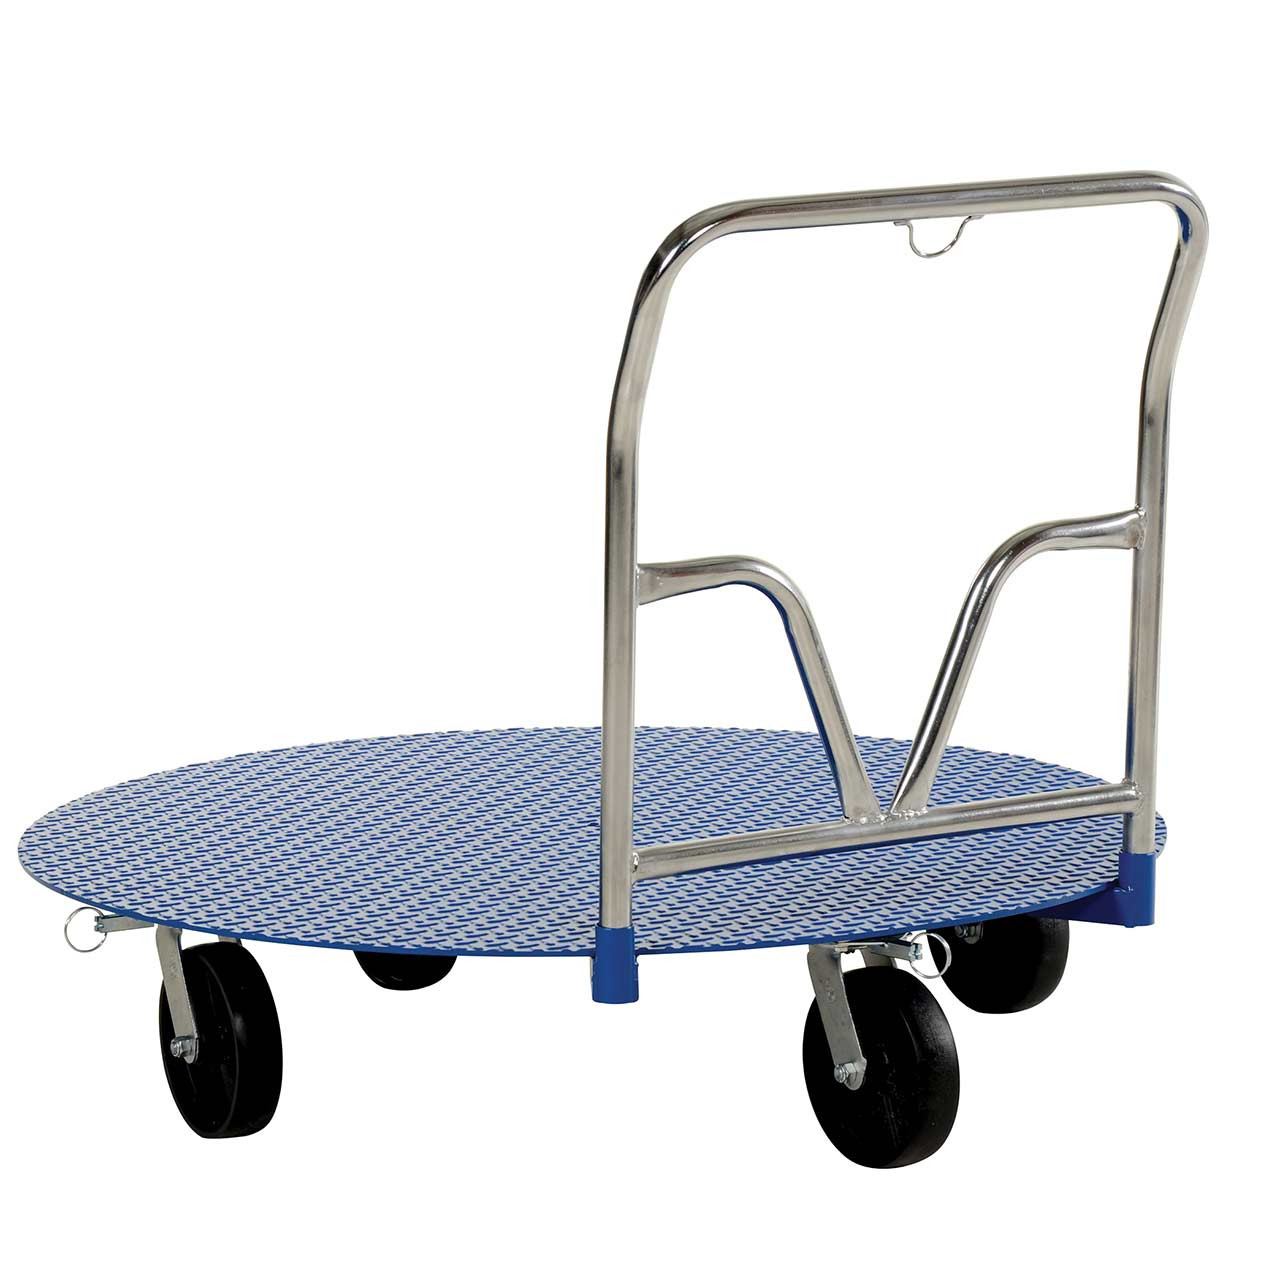 Back view of pallet carousel cart